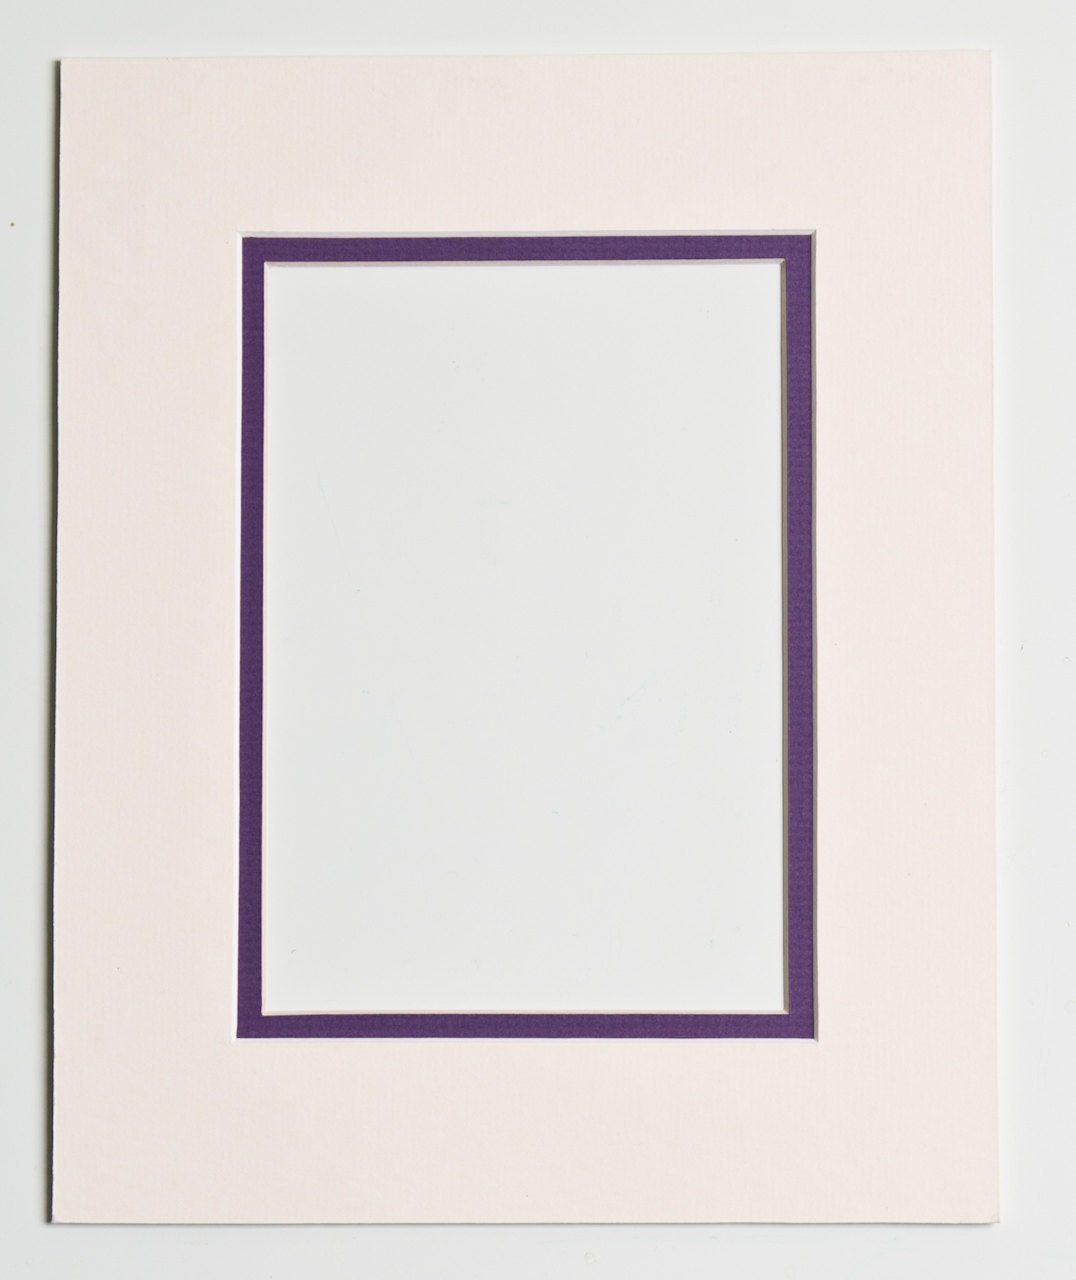 5x7 Double Mat Cream And Purple For 8x10 Frame